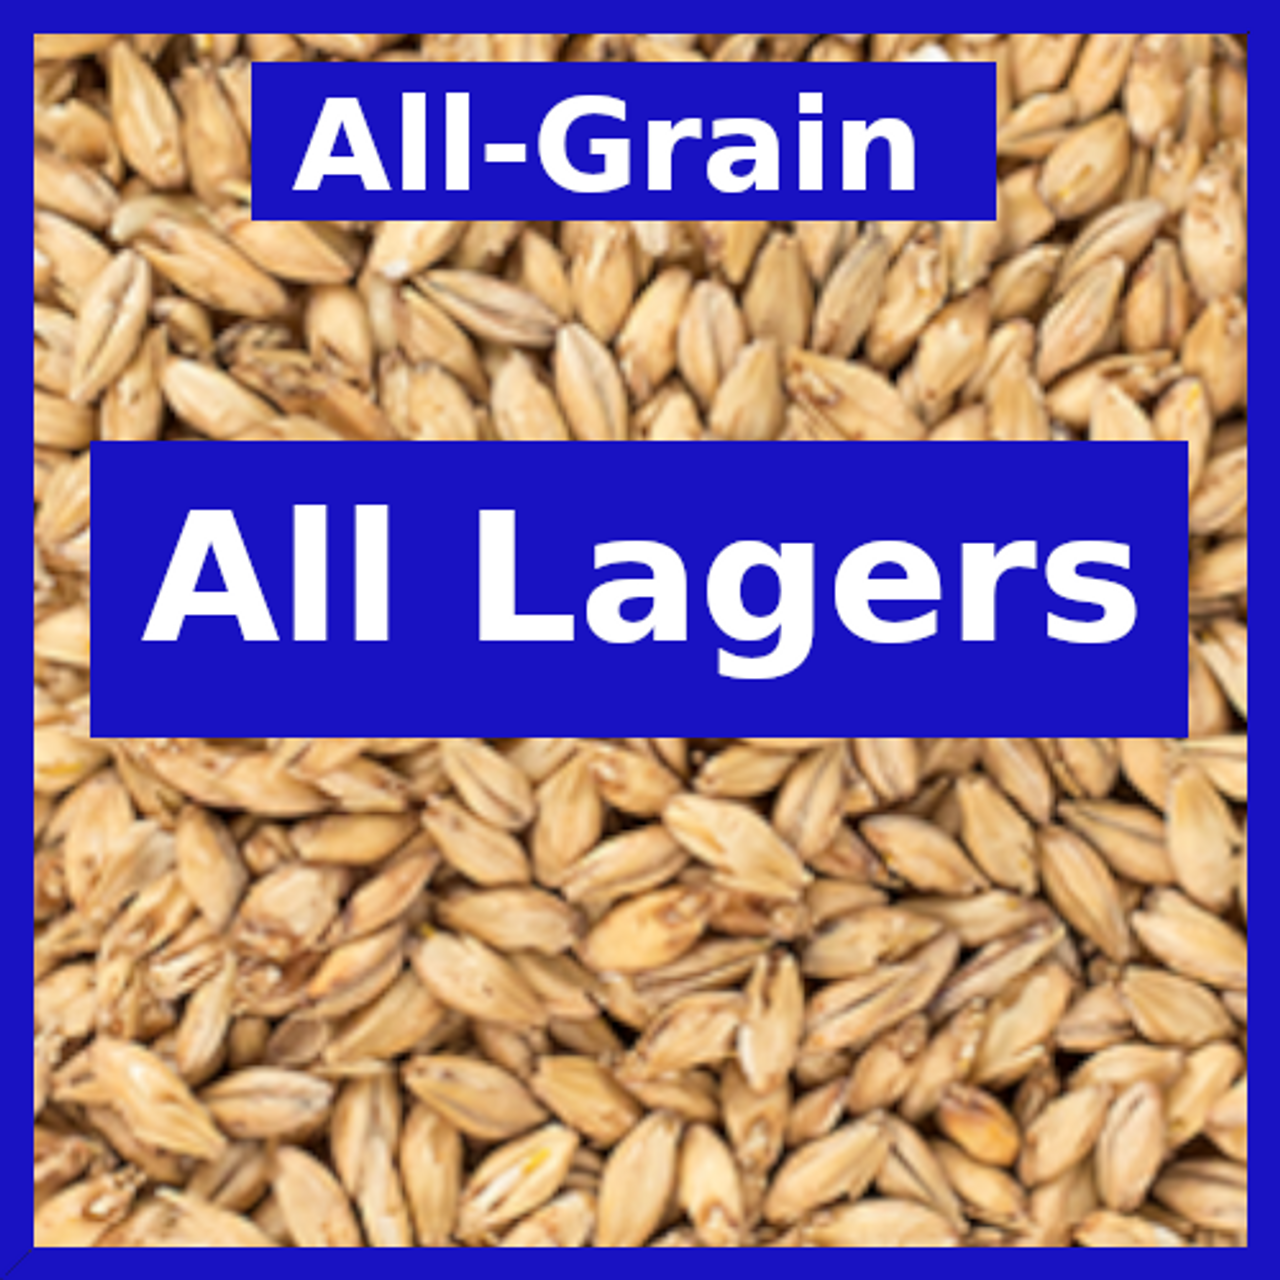 All Lagers - All Grain